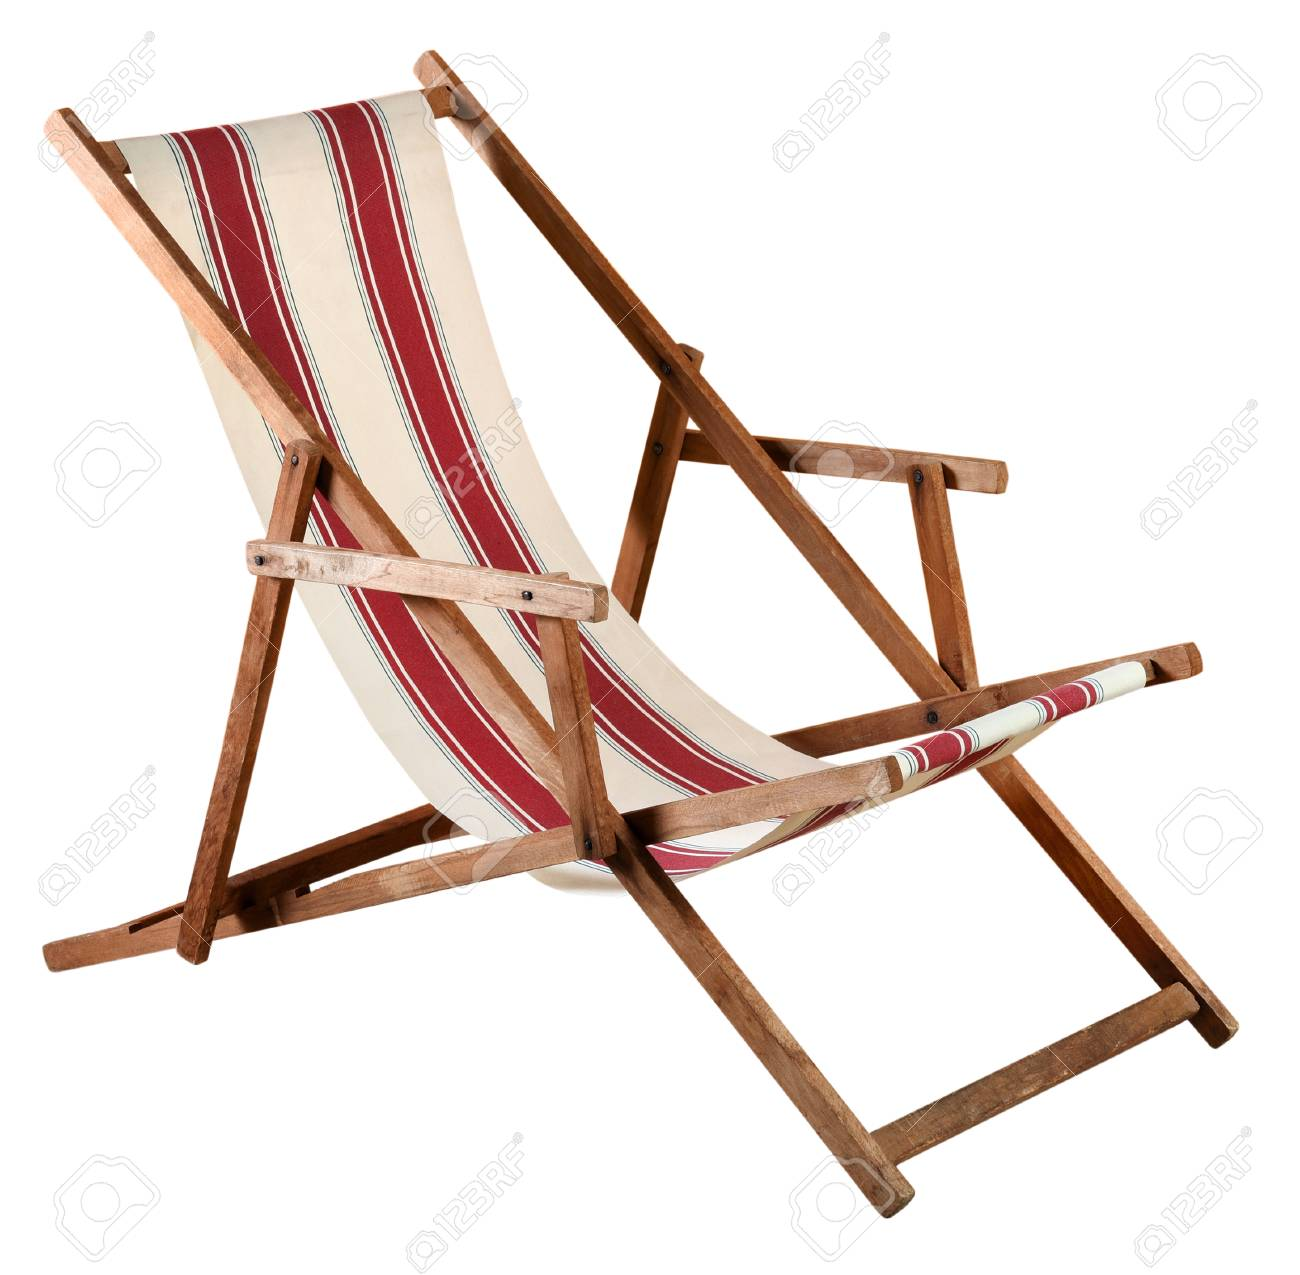 Folding Wood Beach Chair Folding Wooden Deckchair Or Beach Chair With Striped Red And